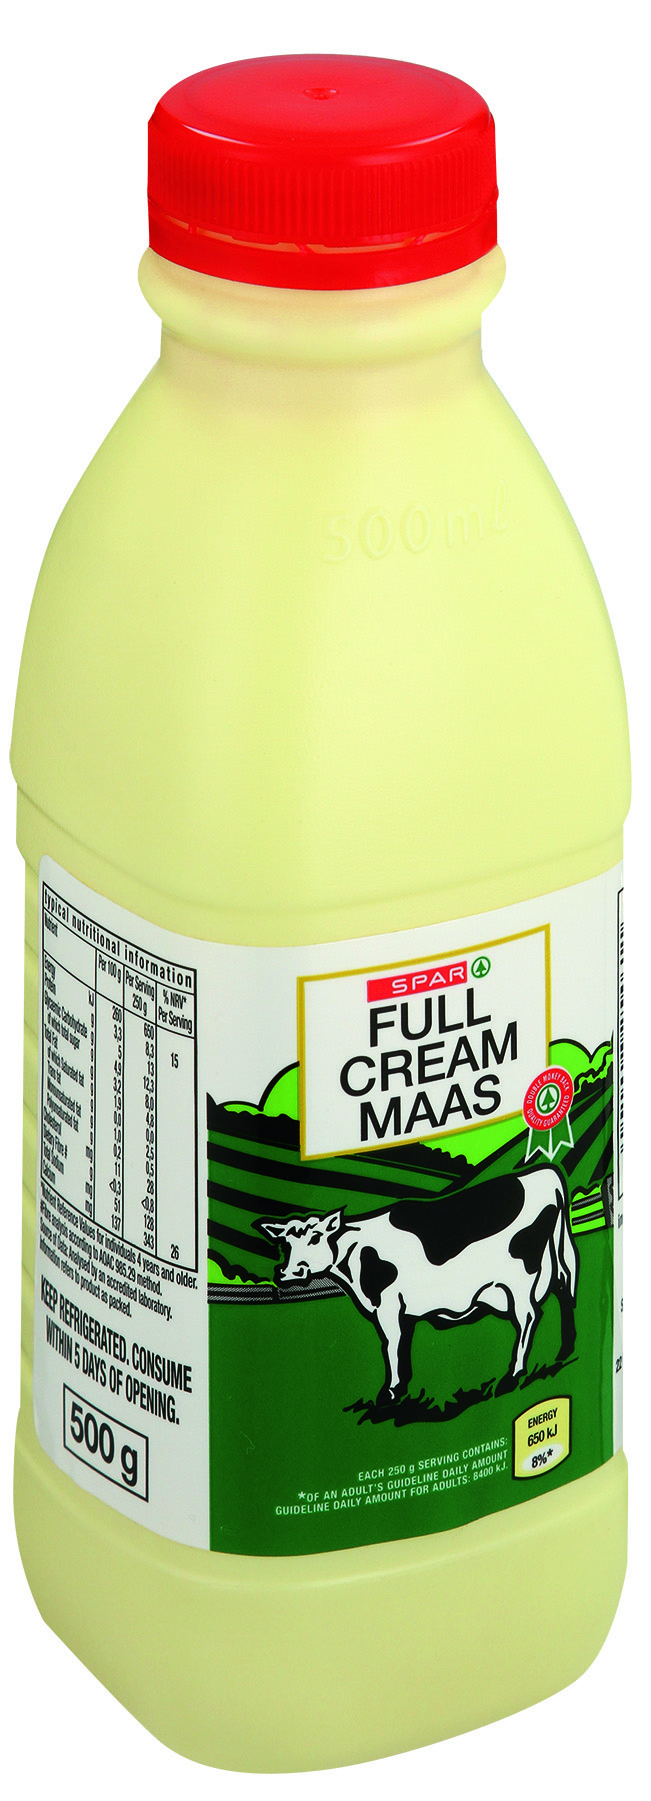 full cream maas